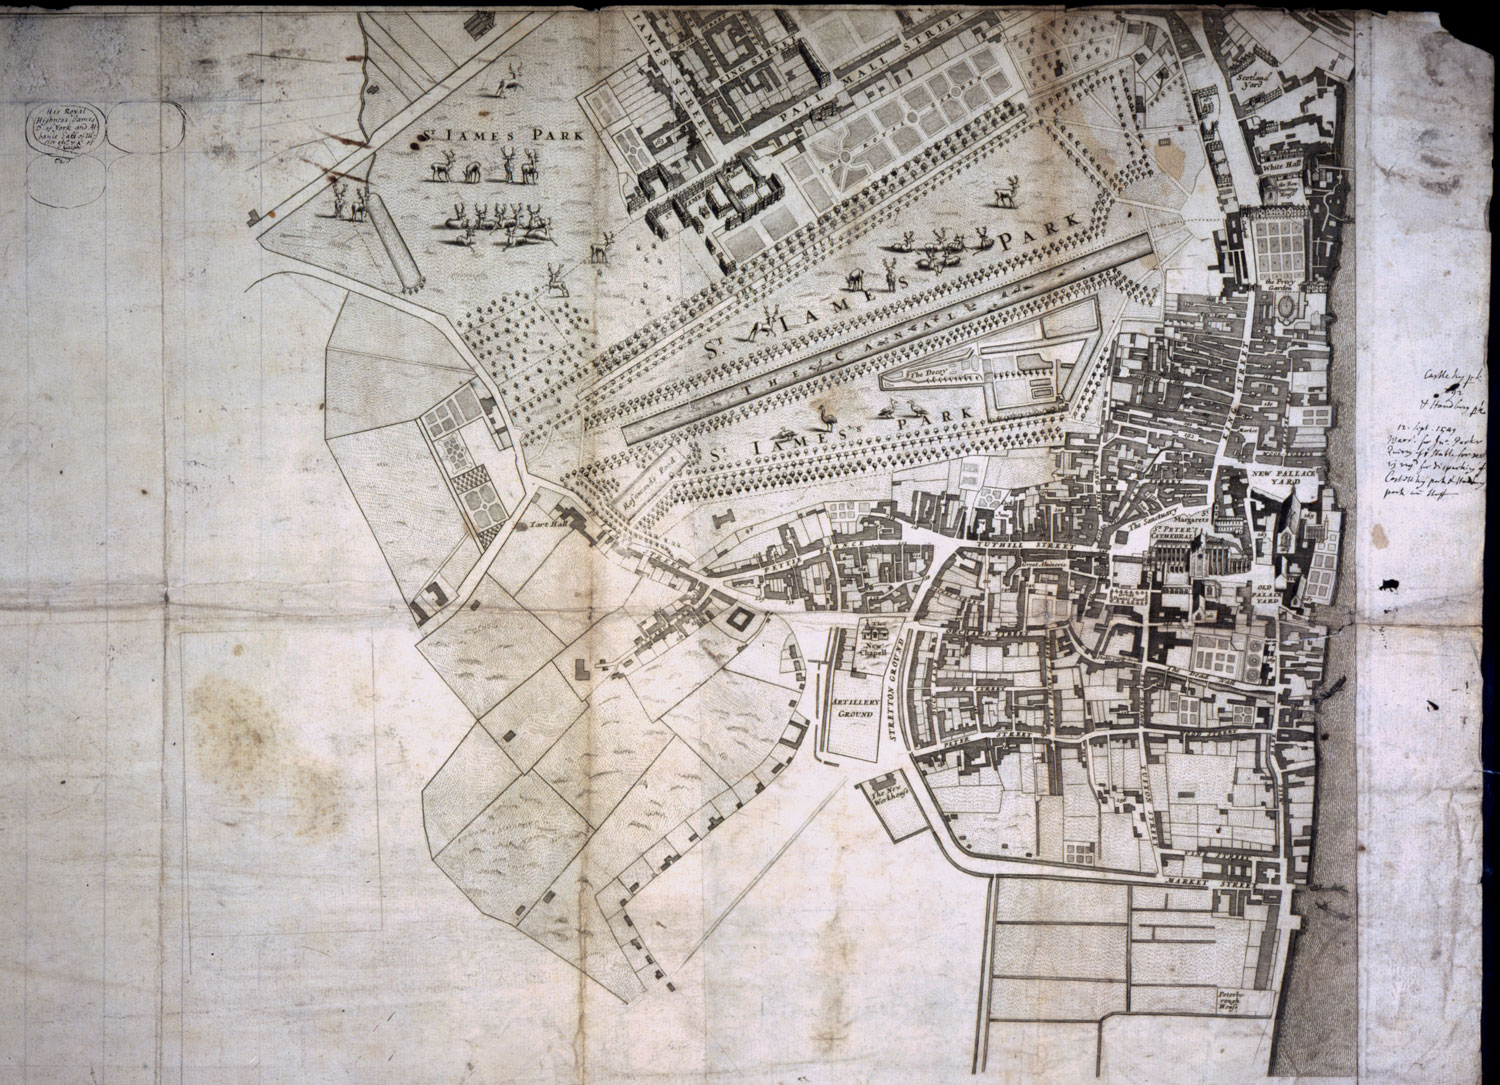 Map of Jame's Palace (CRES 2/1648)